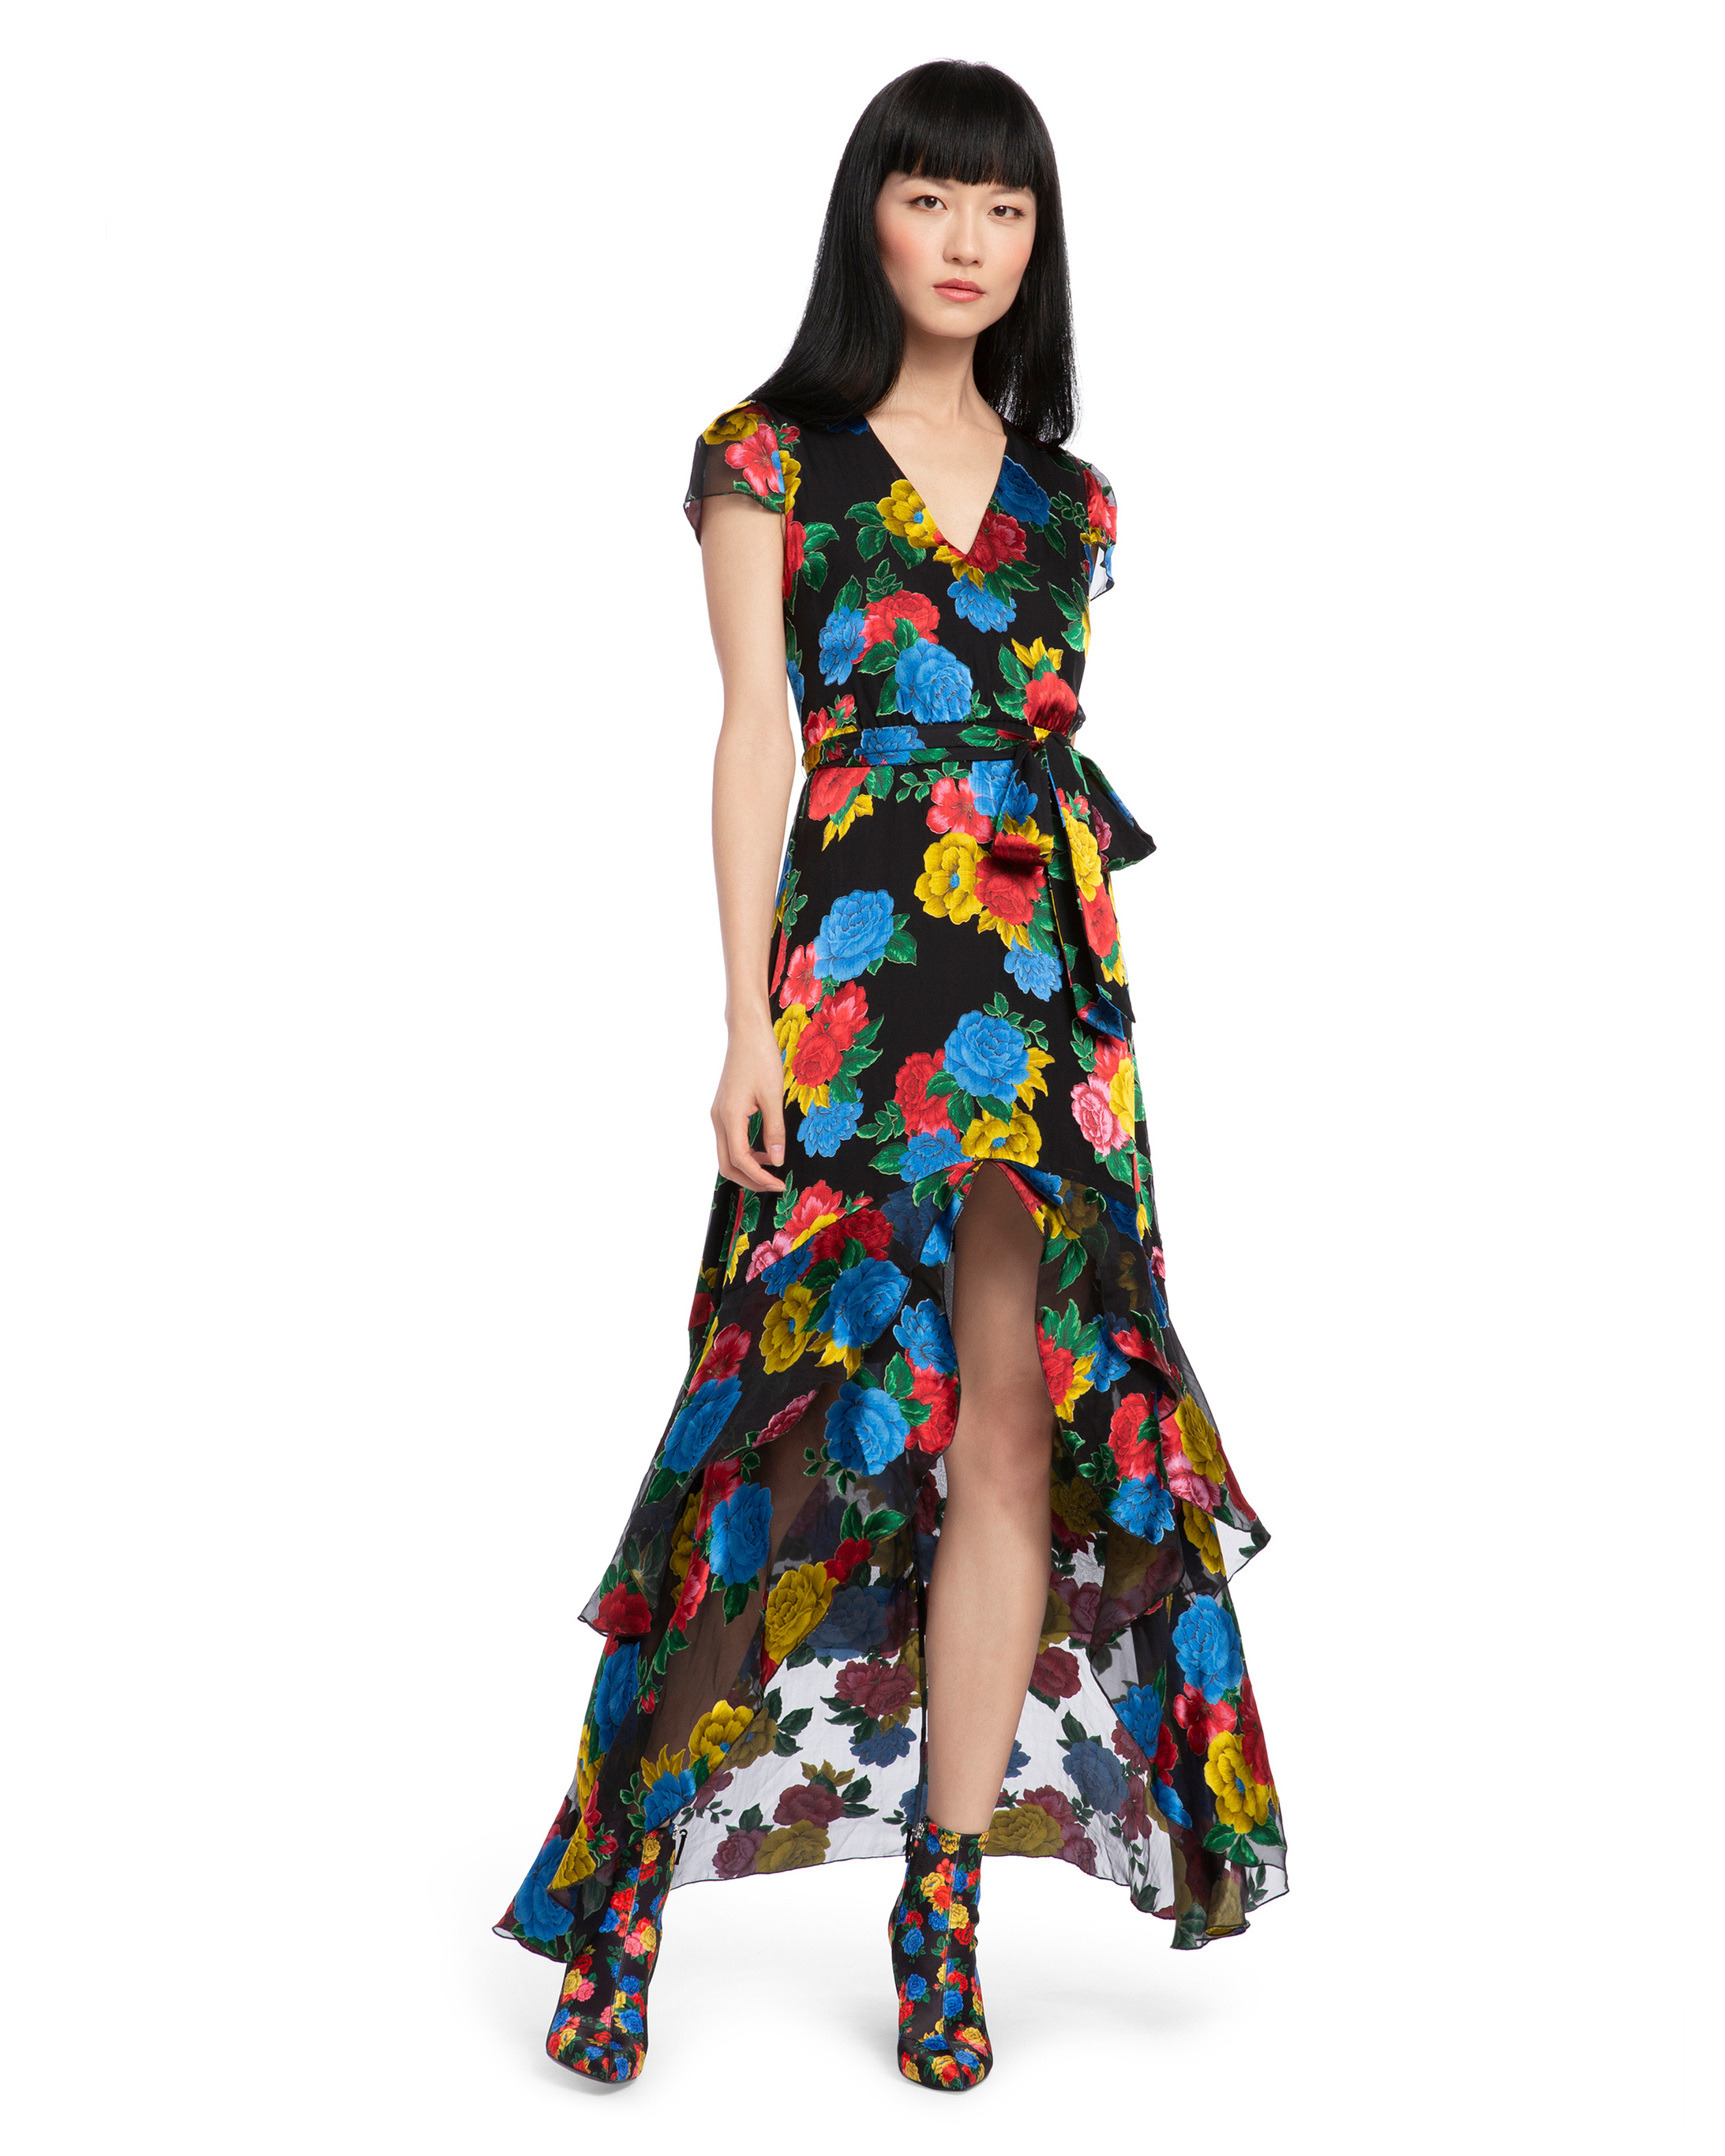 high-low long black dress with primary color floral print